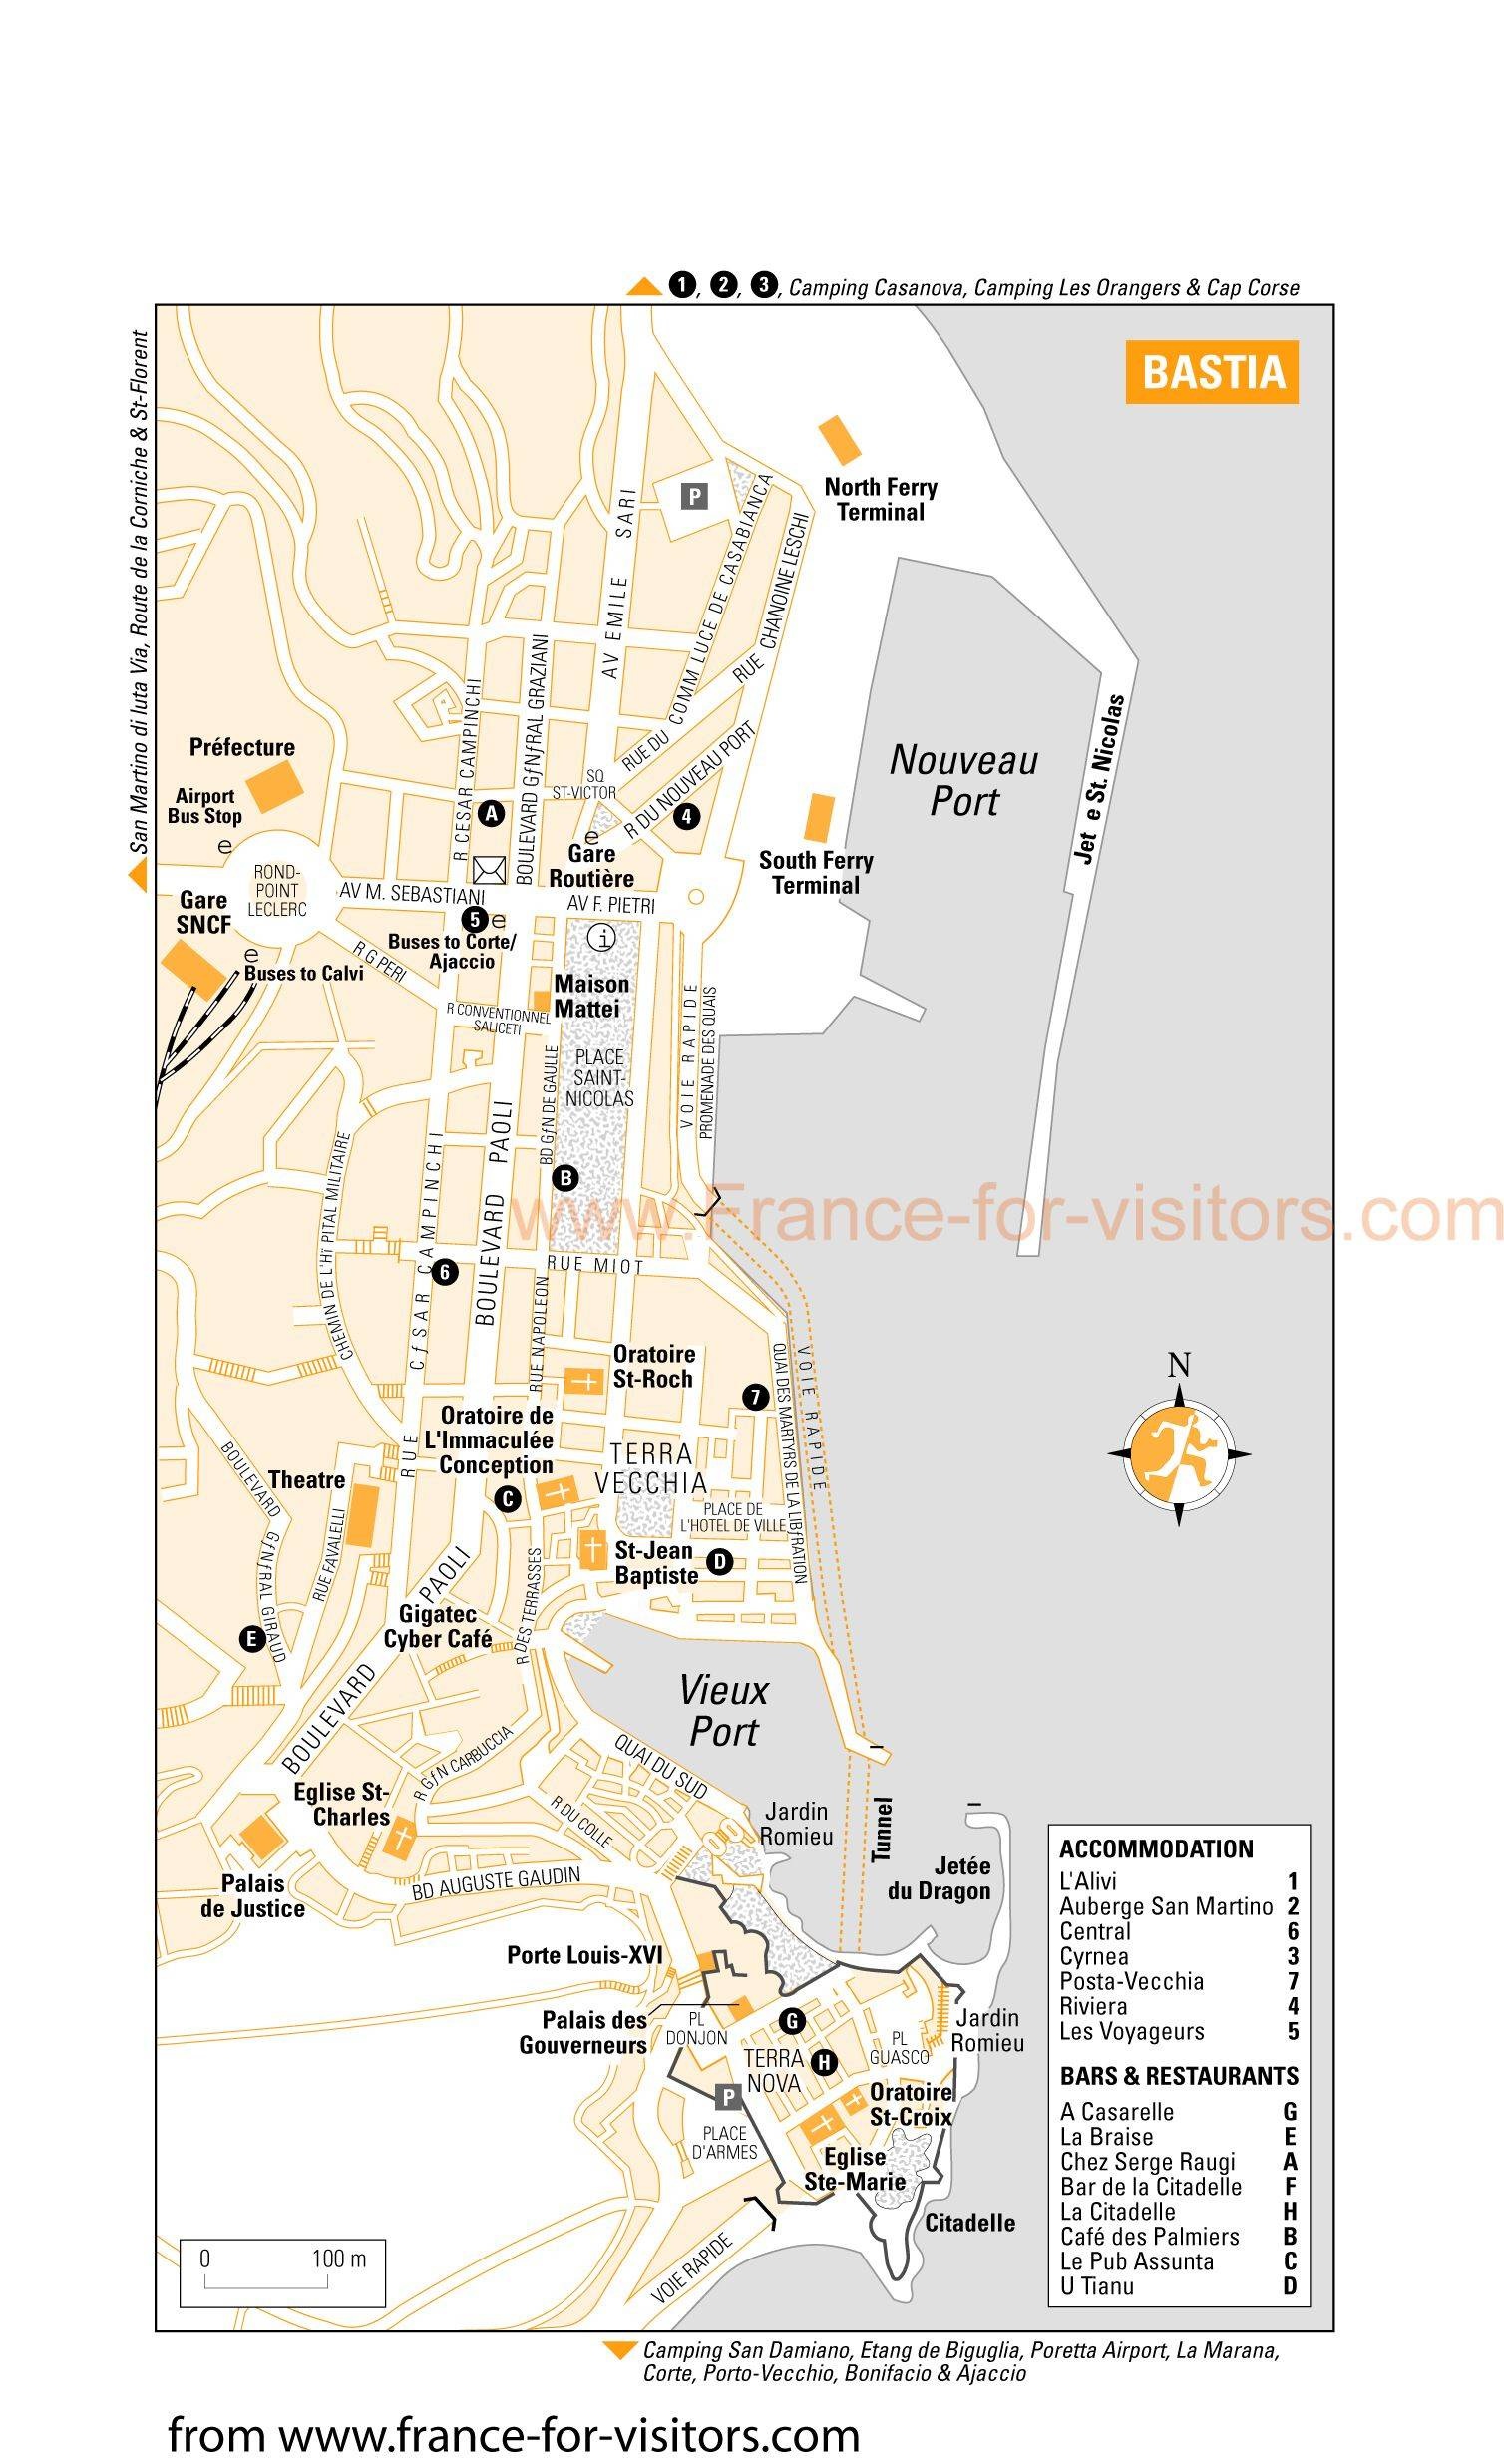 Hotel Port Bastia Large Bastia Maps For Free Download And Print High Resolution